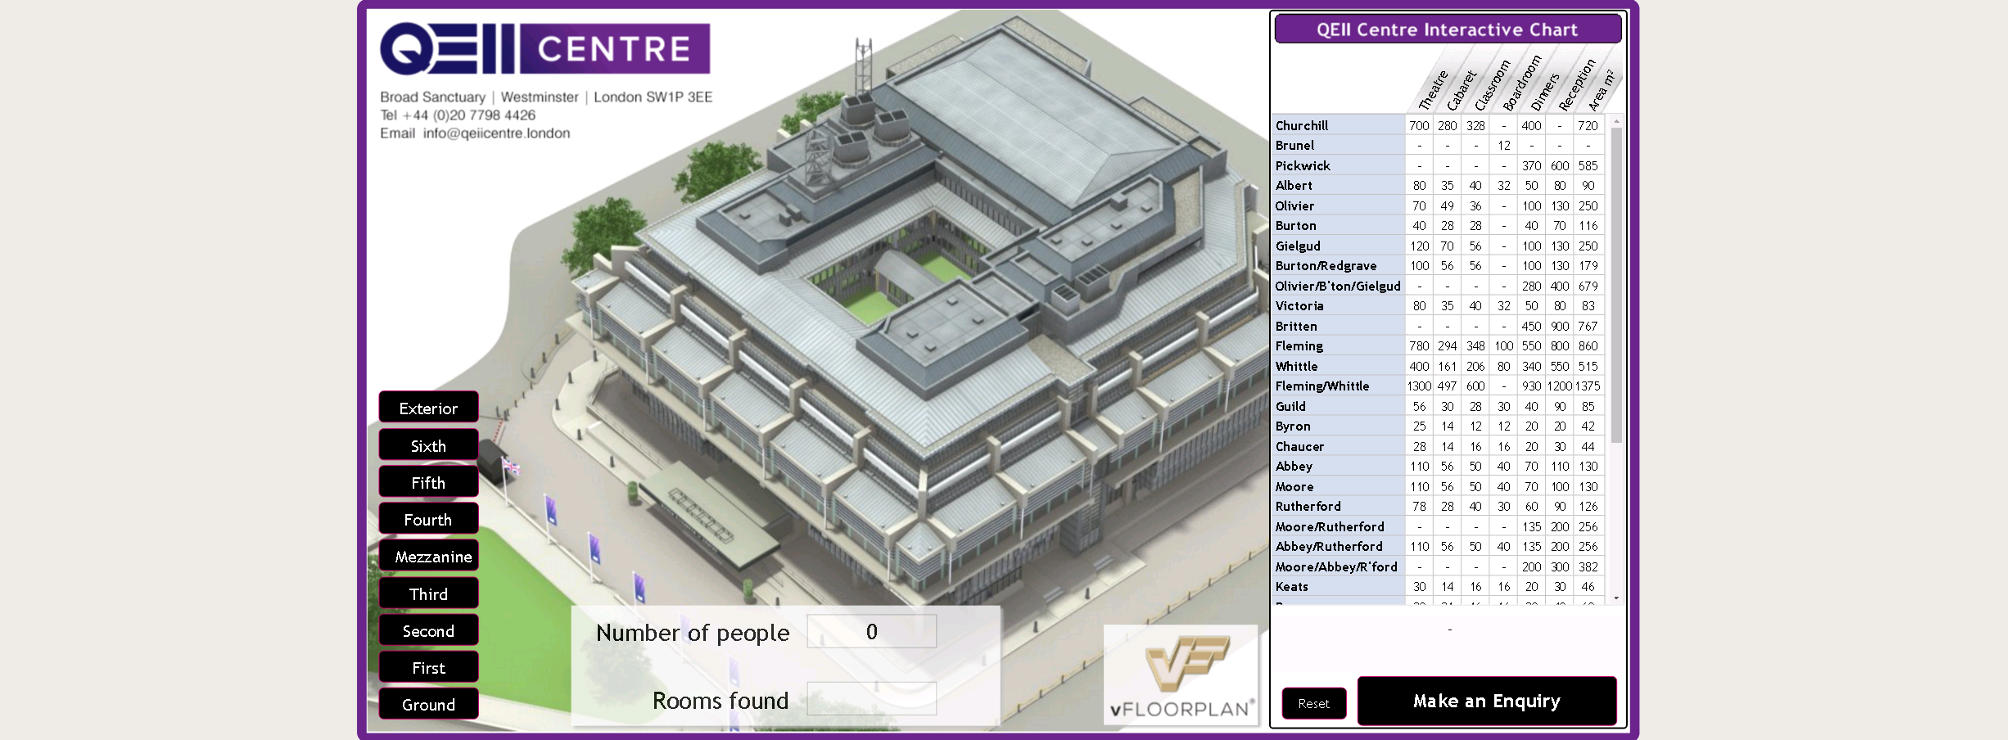 QEII Centre vFloorplan